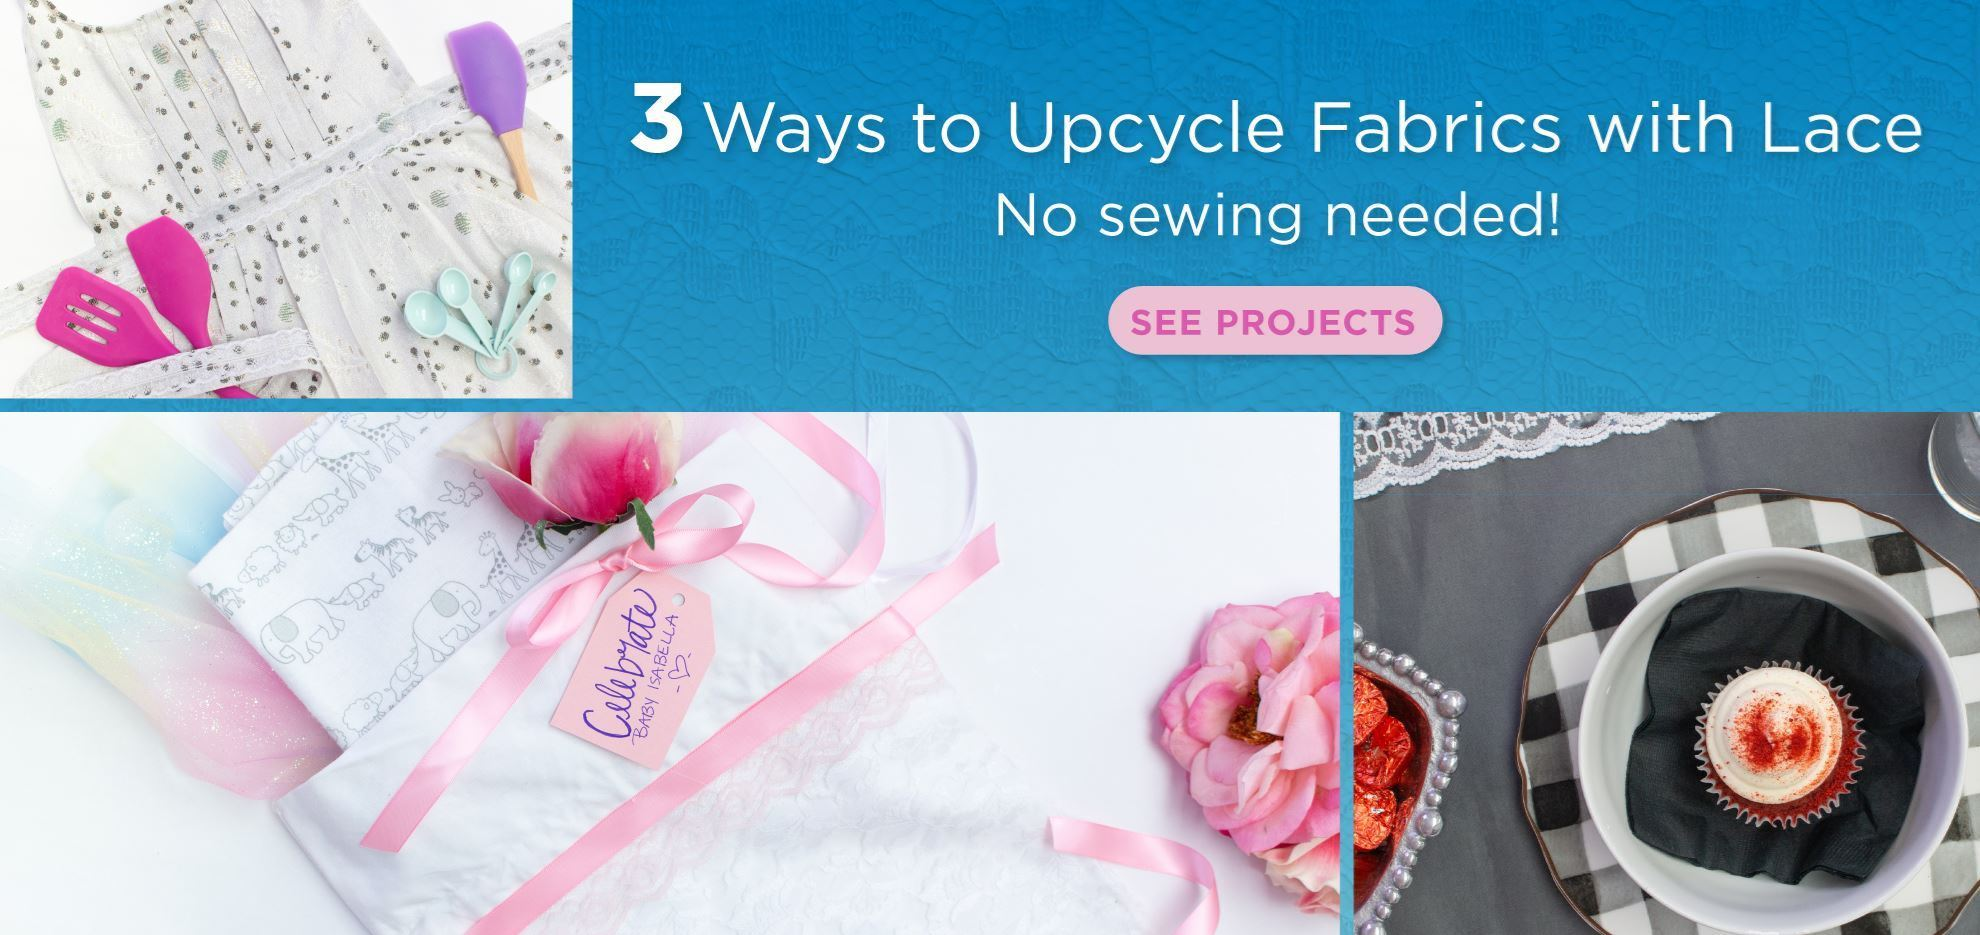 3 Ways to Upcycle Fabrics with Lace and Fabric Glue